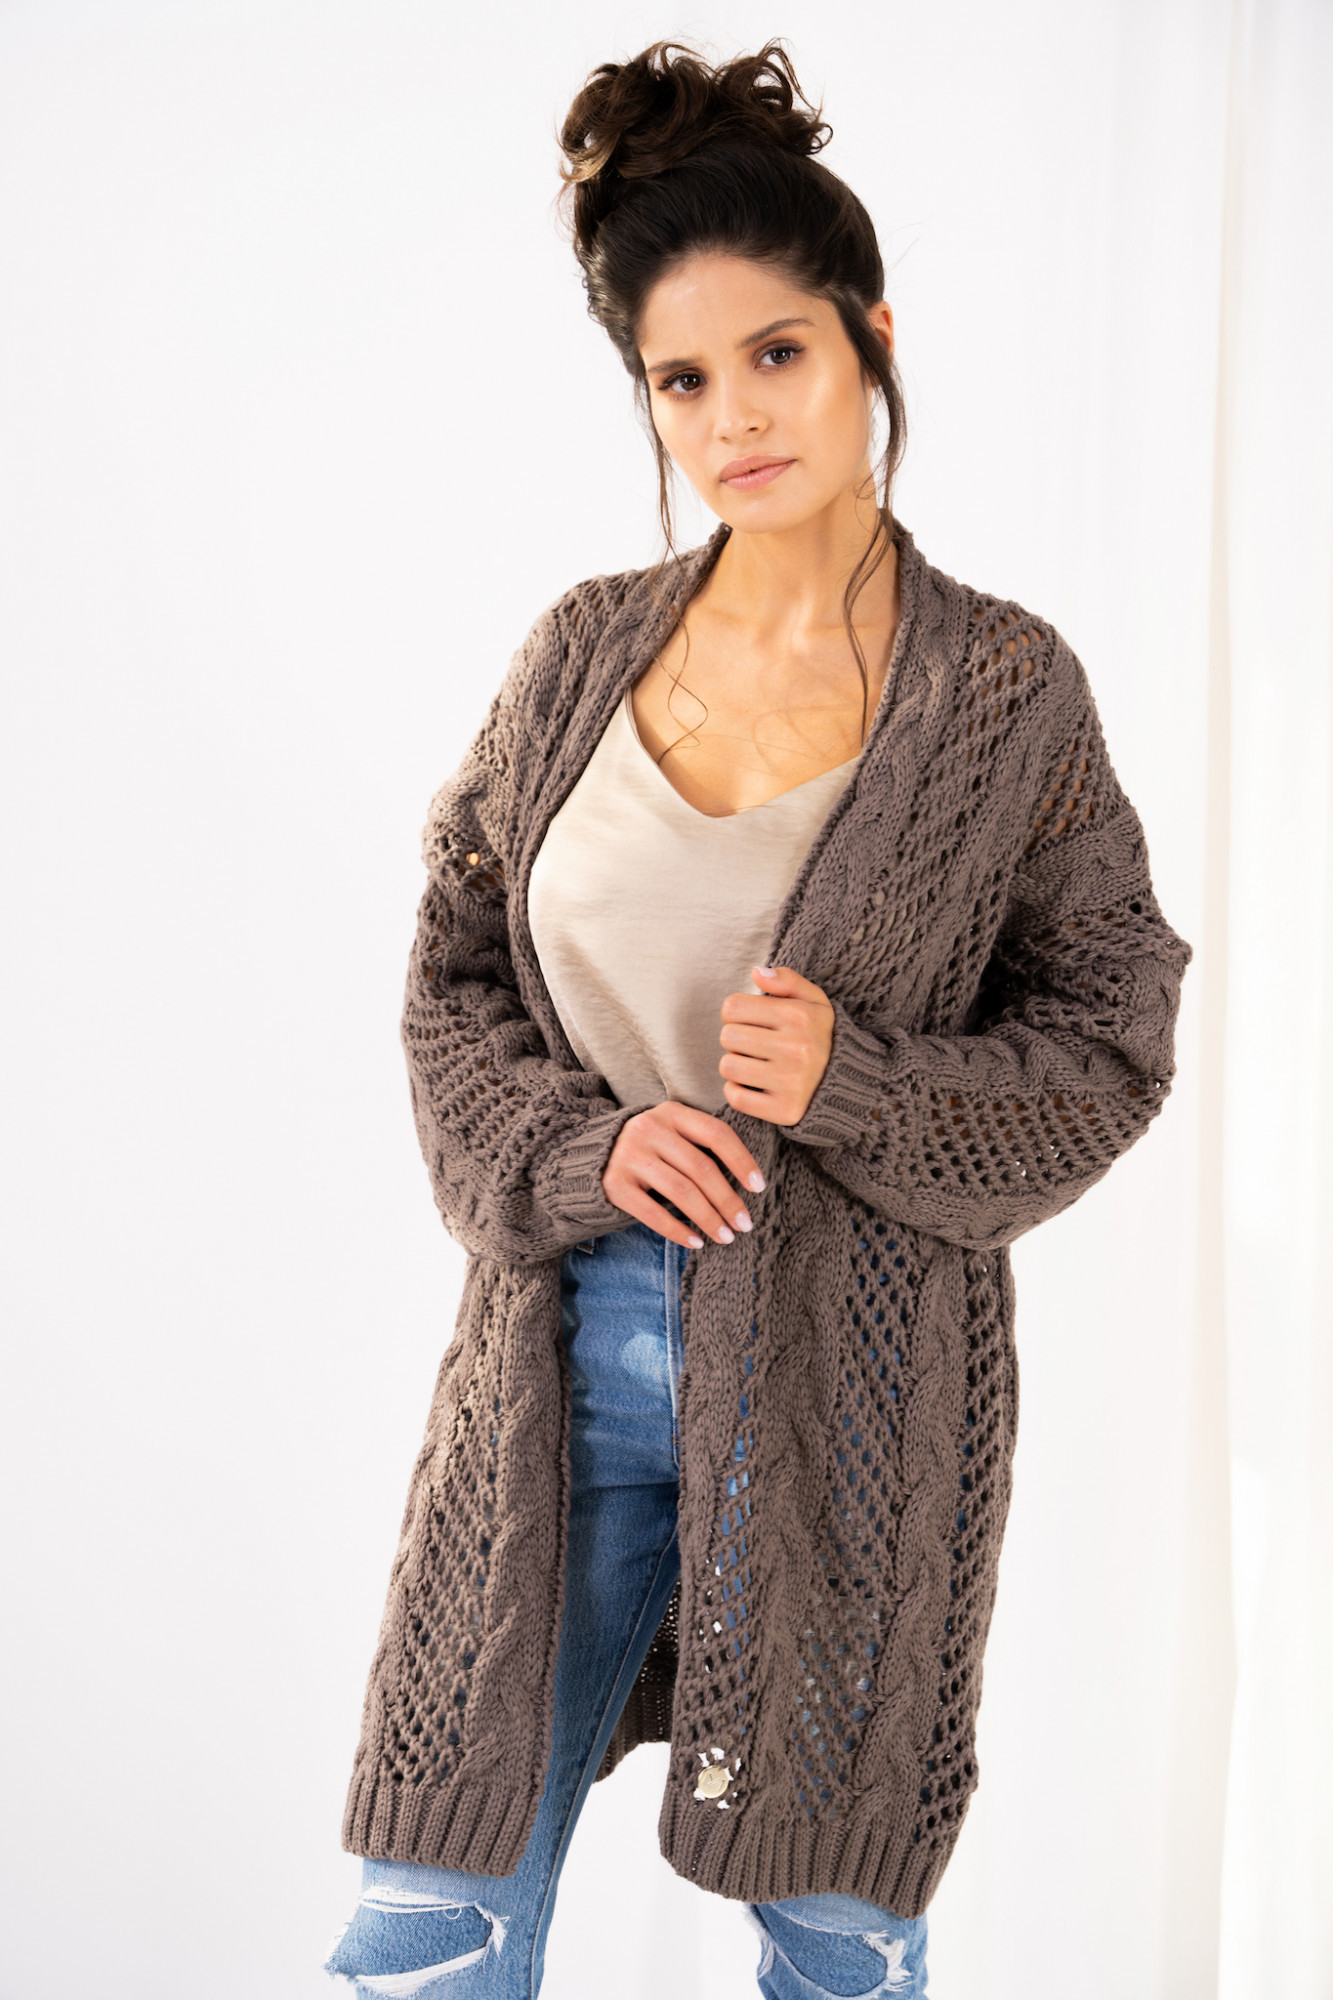 Openwork cardigan with braids Ophelia cappuccino